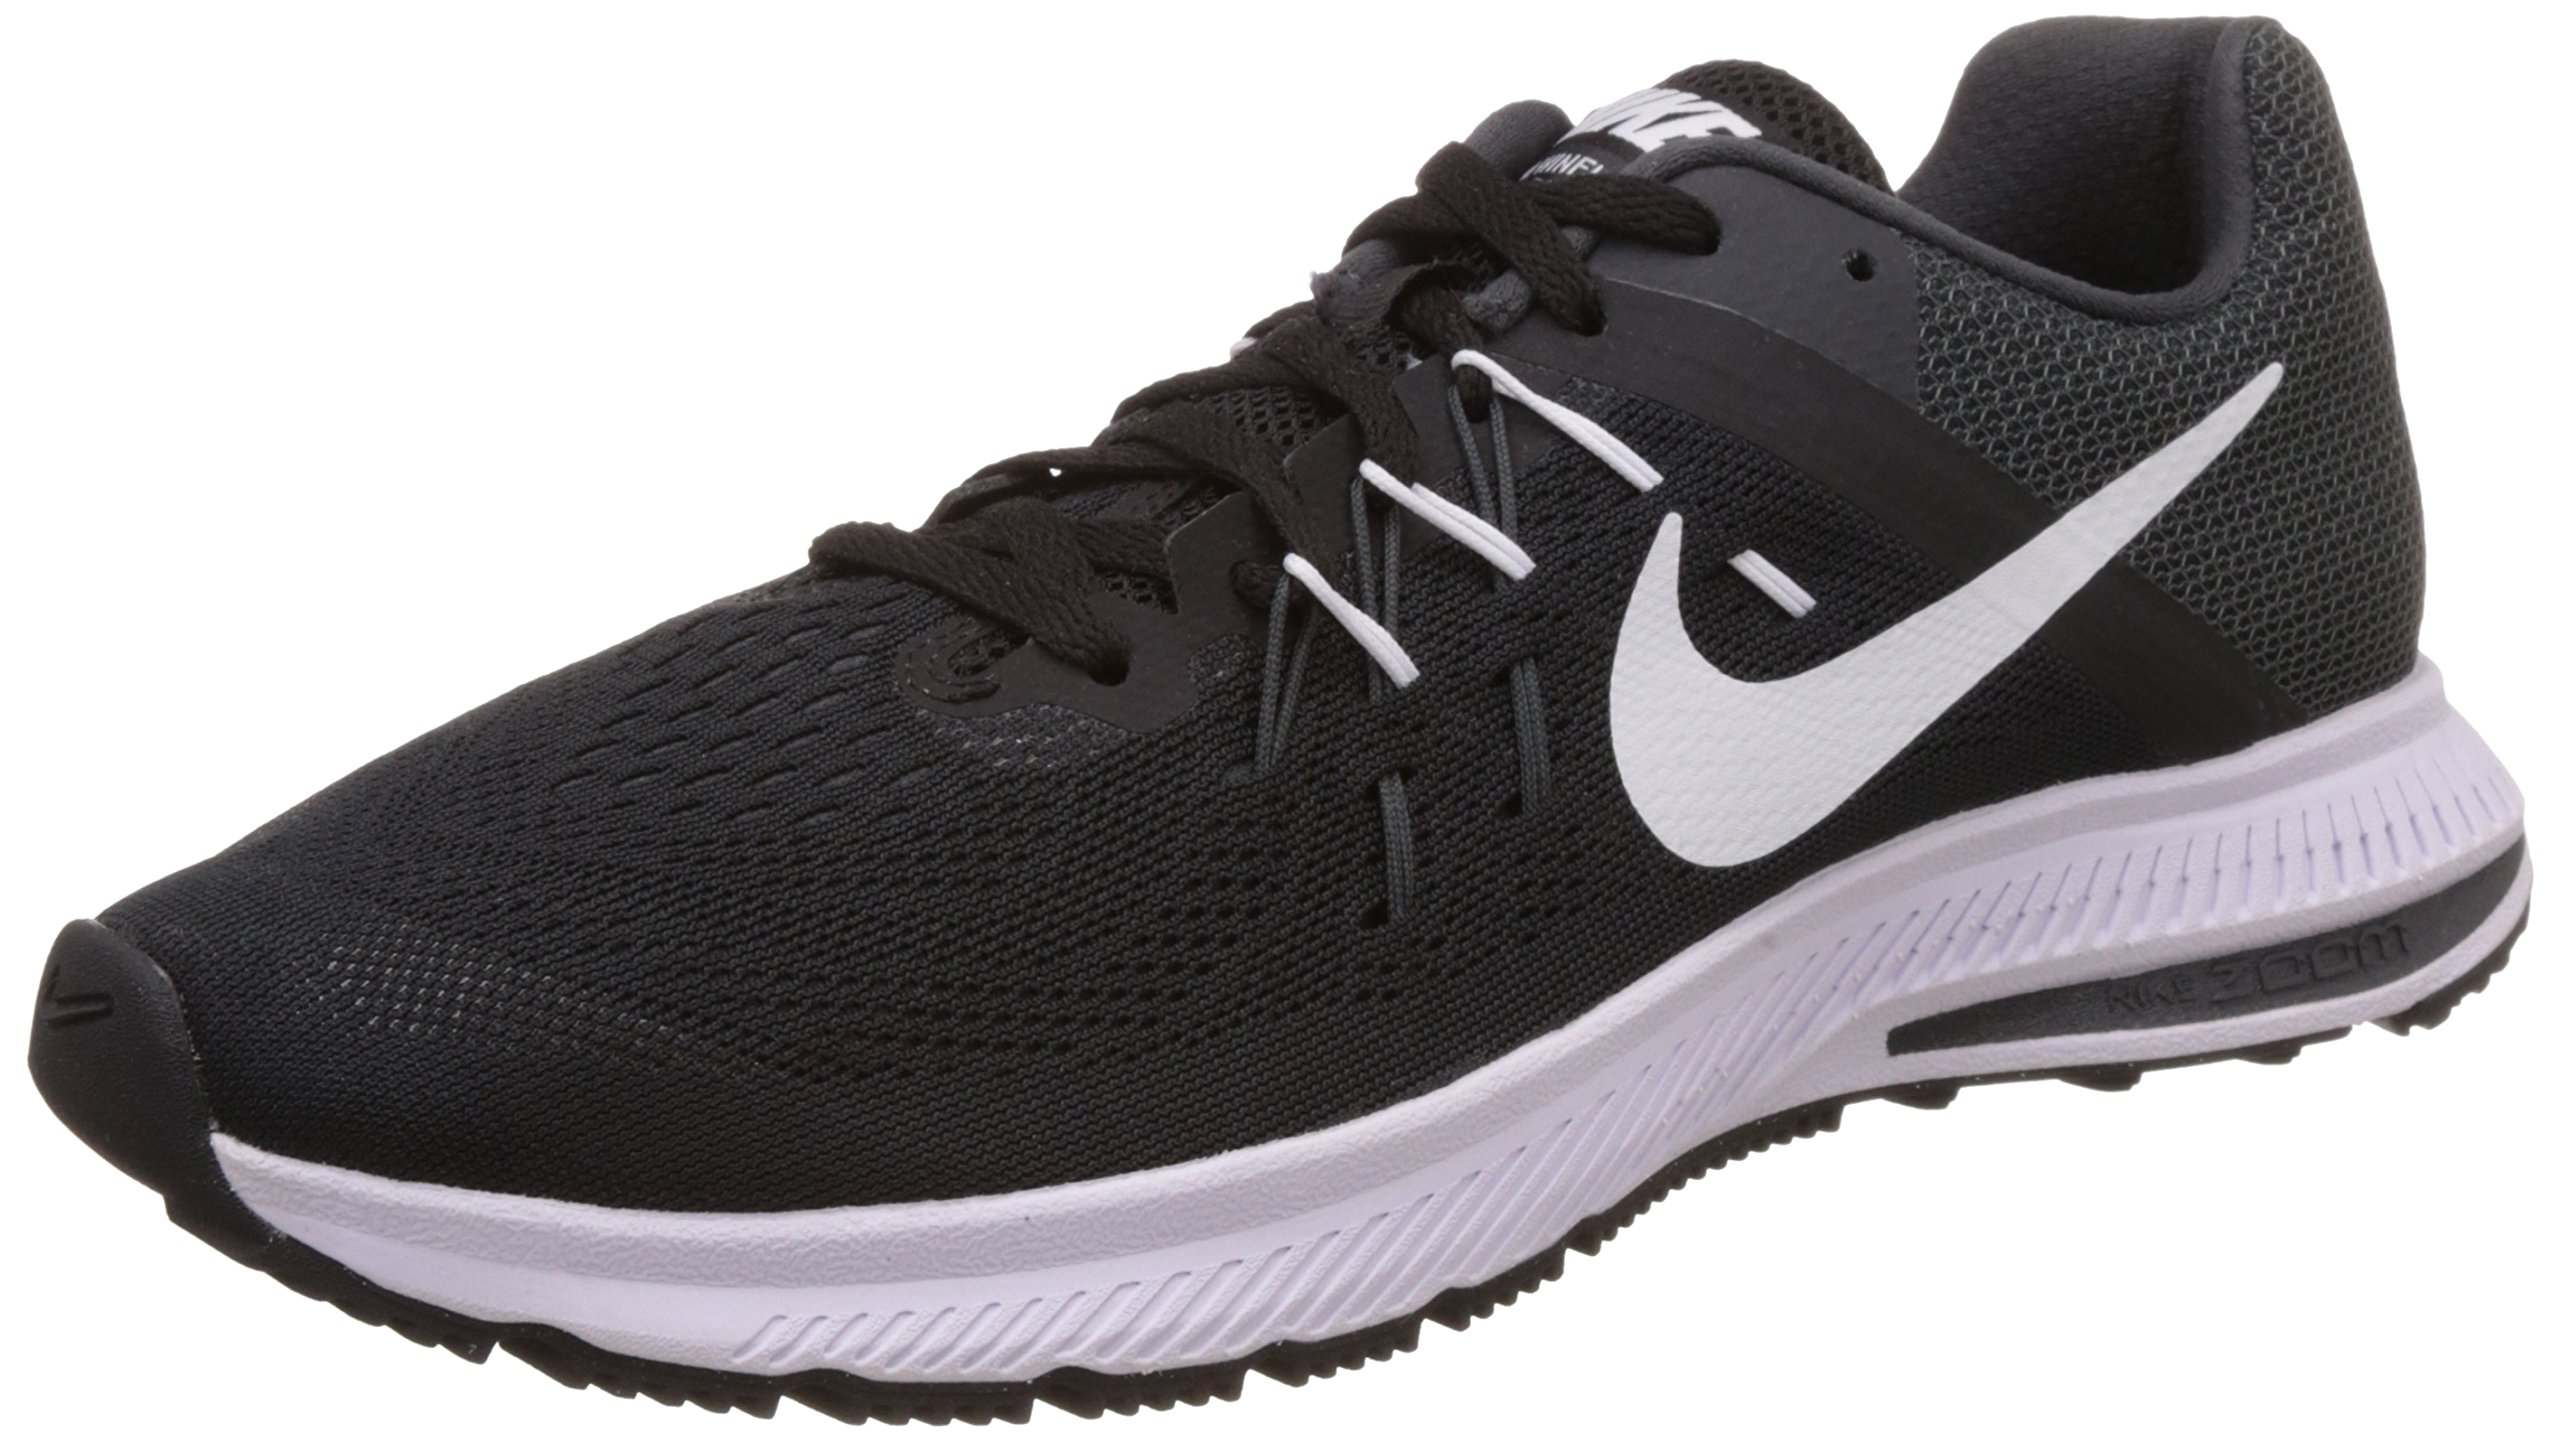 newest 868ac 2c7bb Galleon - Nike Mens Zoom Winflo 2 Black White Anthracite Running Shoe 8.5  Men US